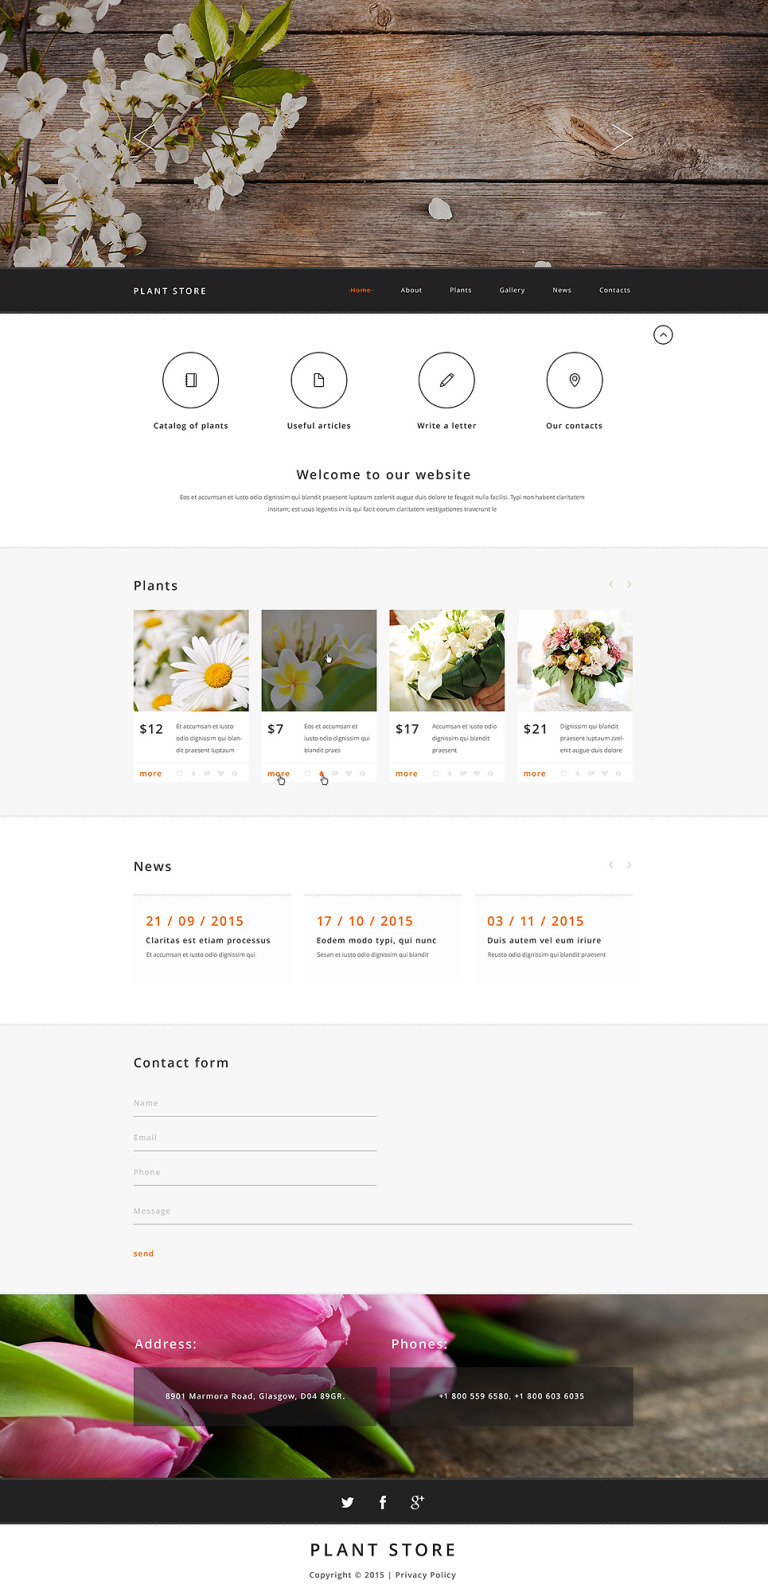 Plant Store Website Template New Screenshots BIG